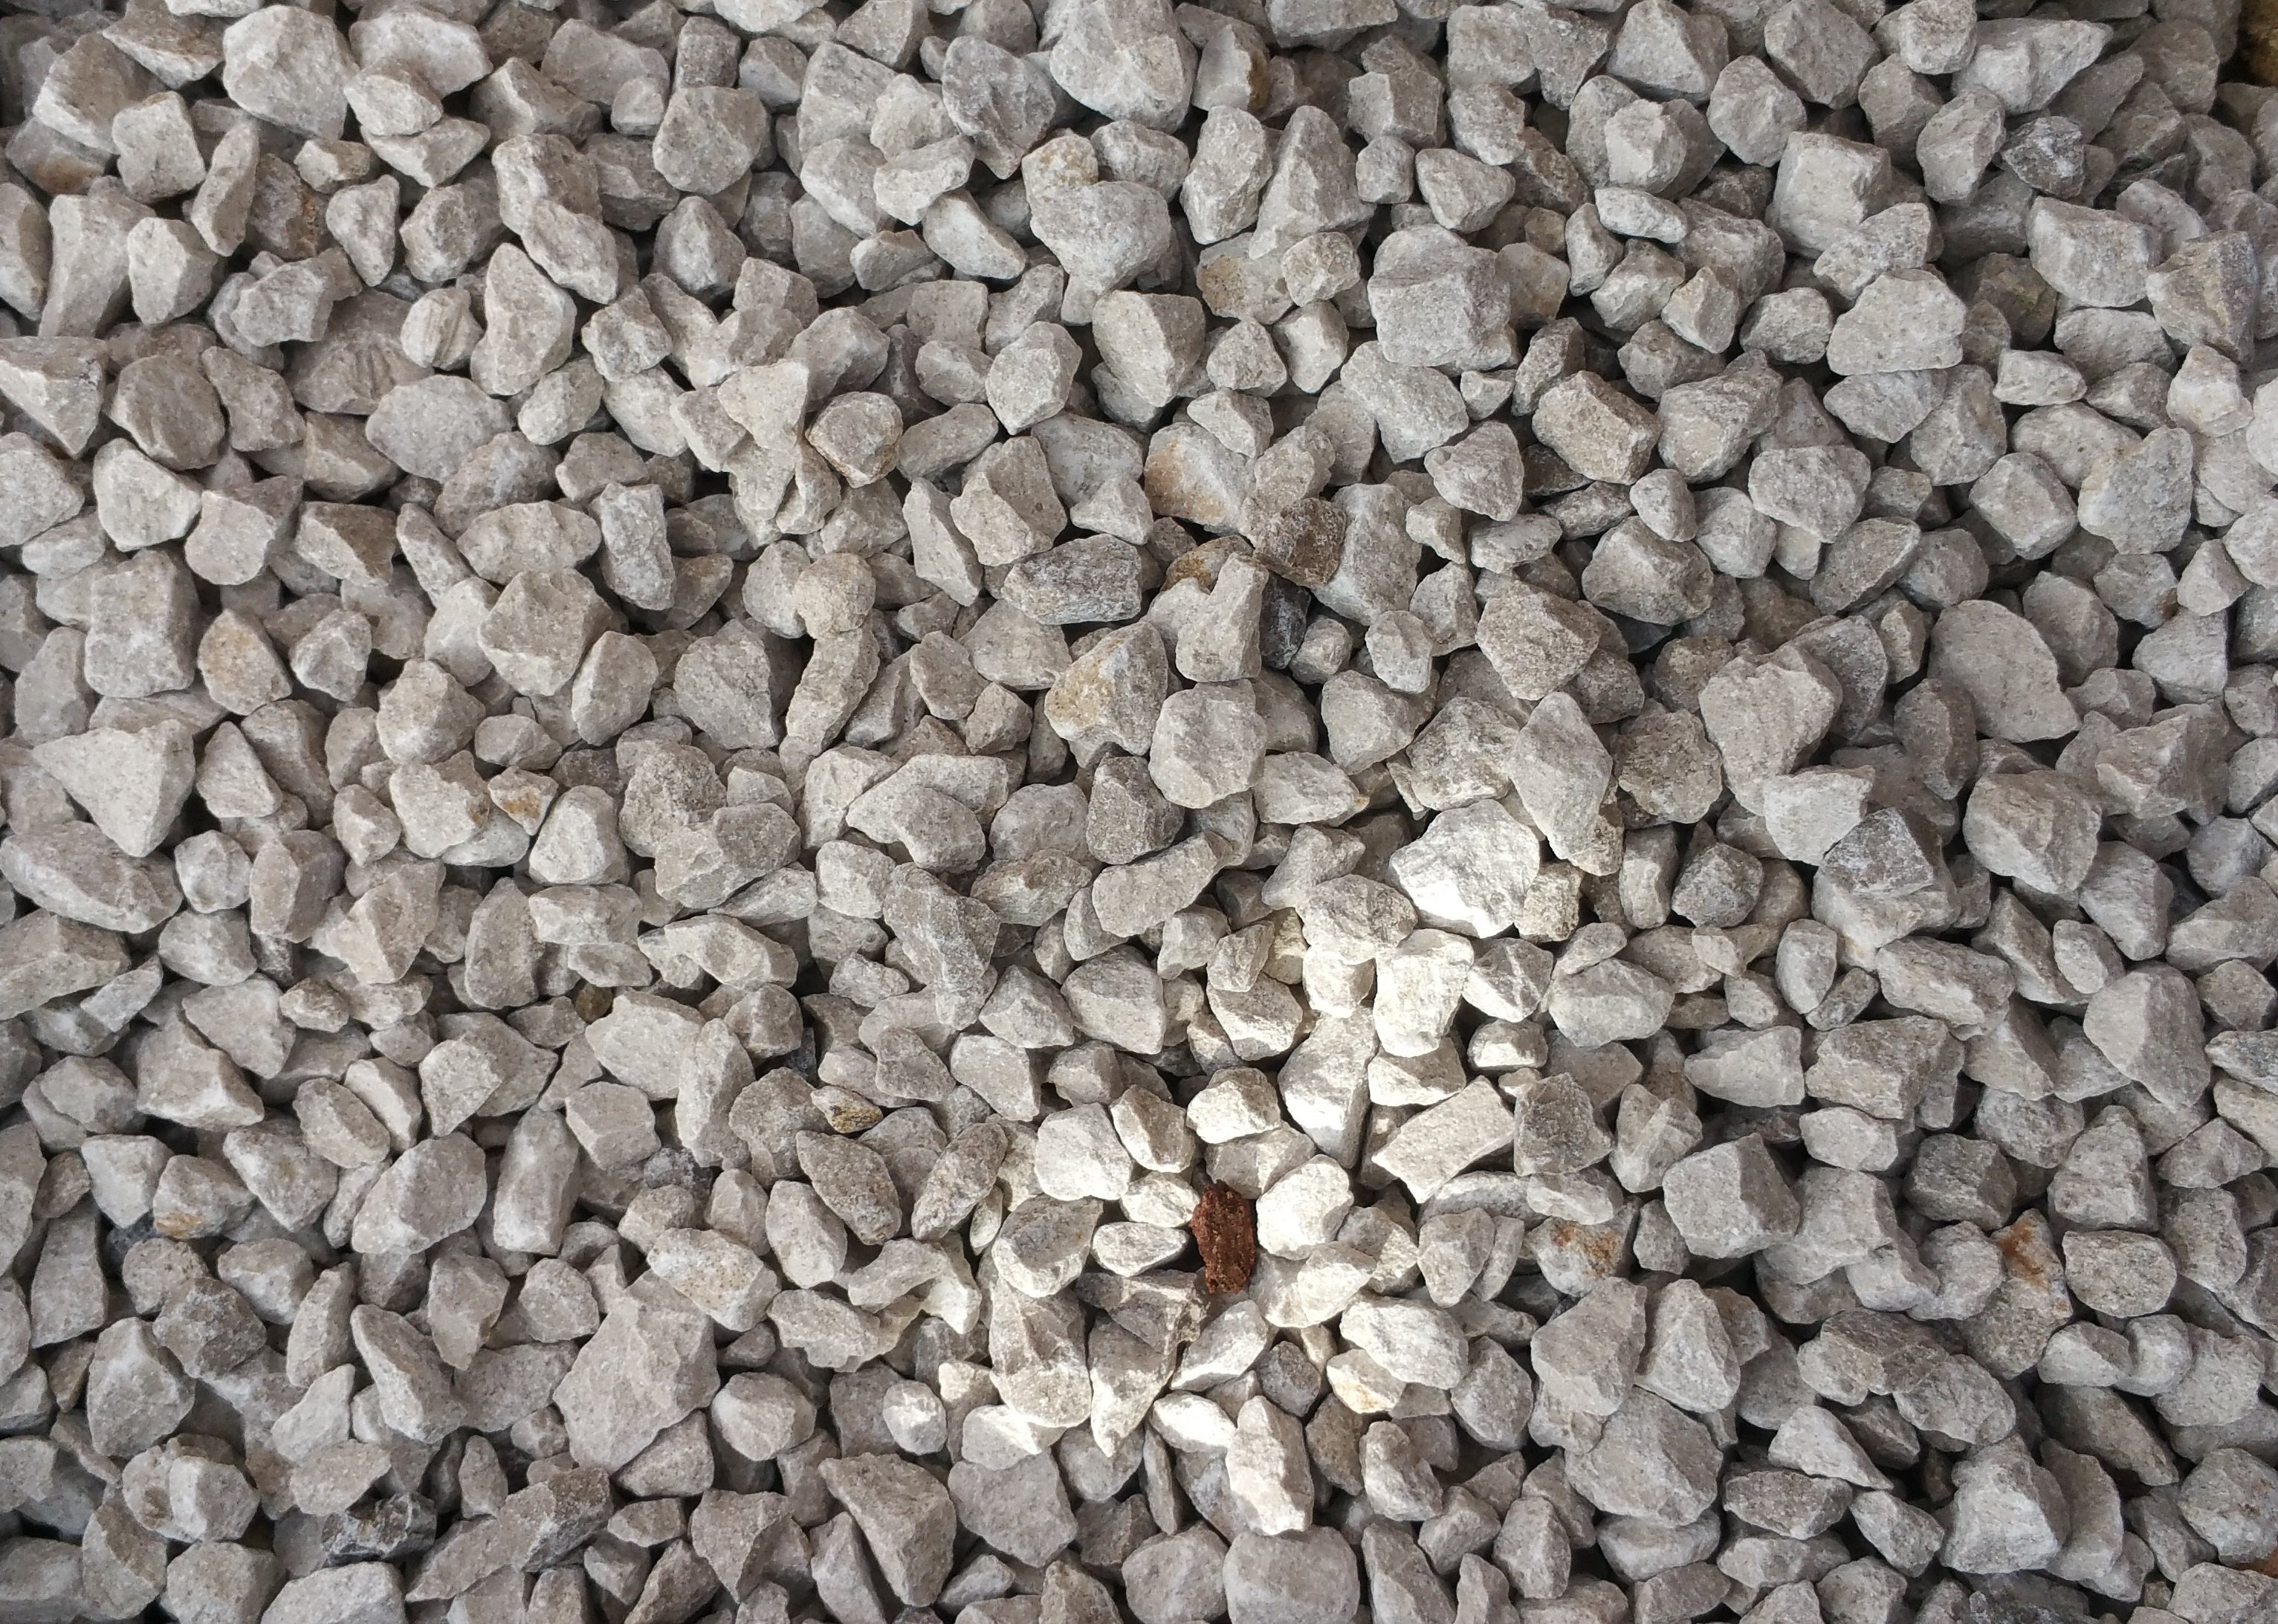 Sand And Gravel : Sand and gravel products supplied in around chesterfield